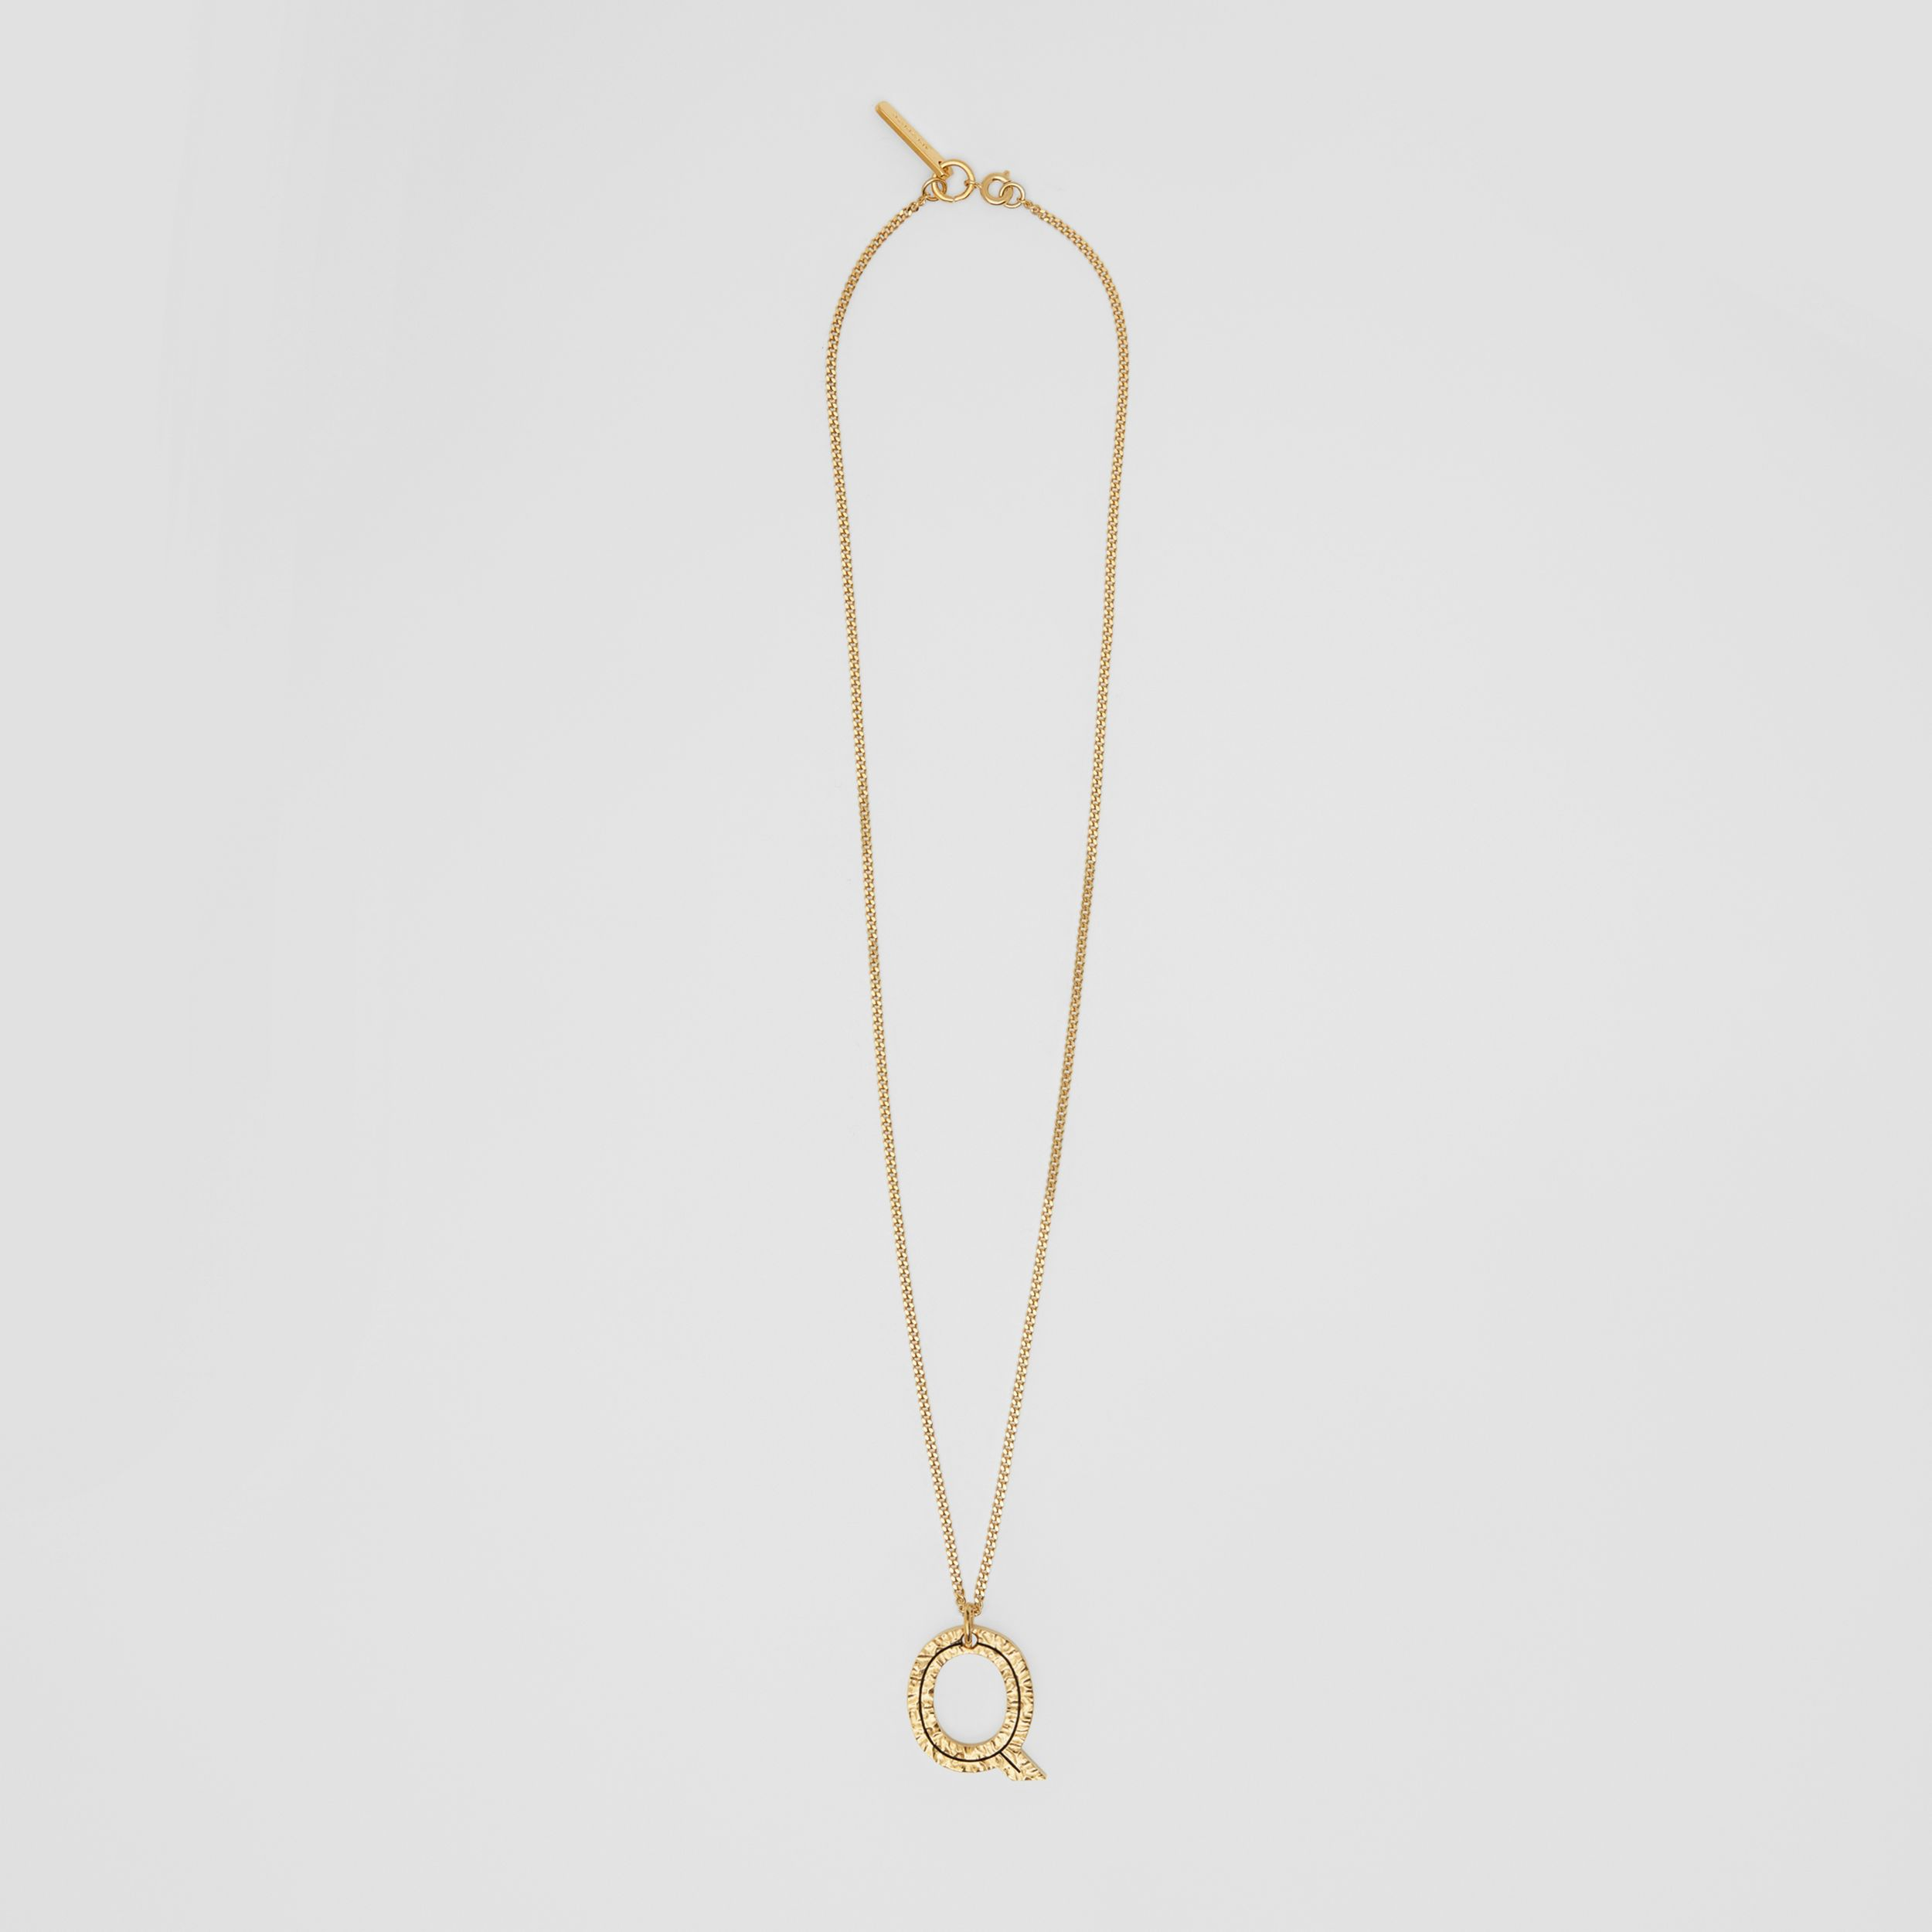 'Q' Alphabet Charm Gold-plated Necklace in Light - Women | Burberry - 1